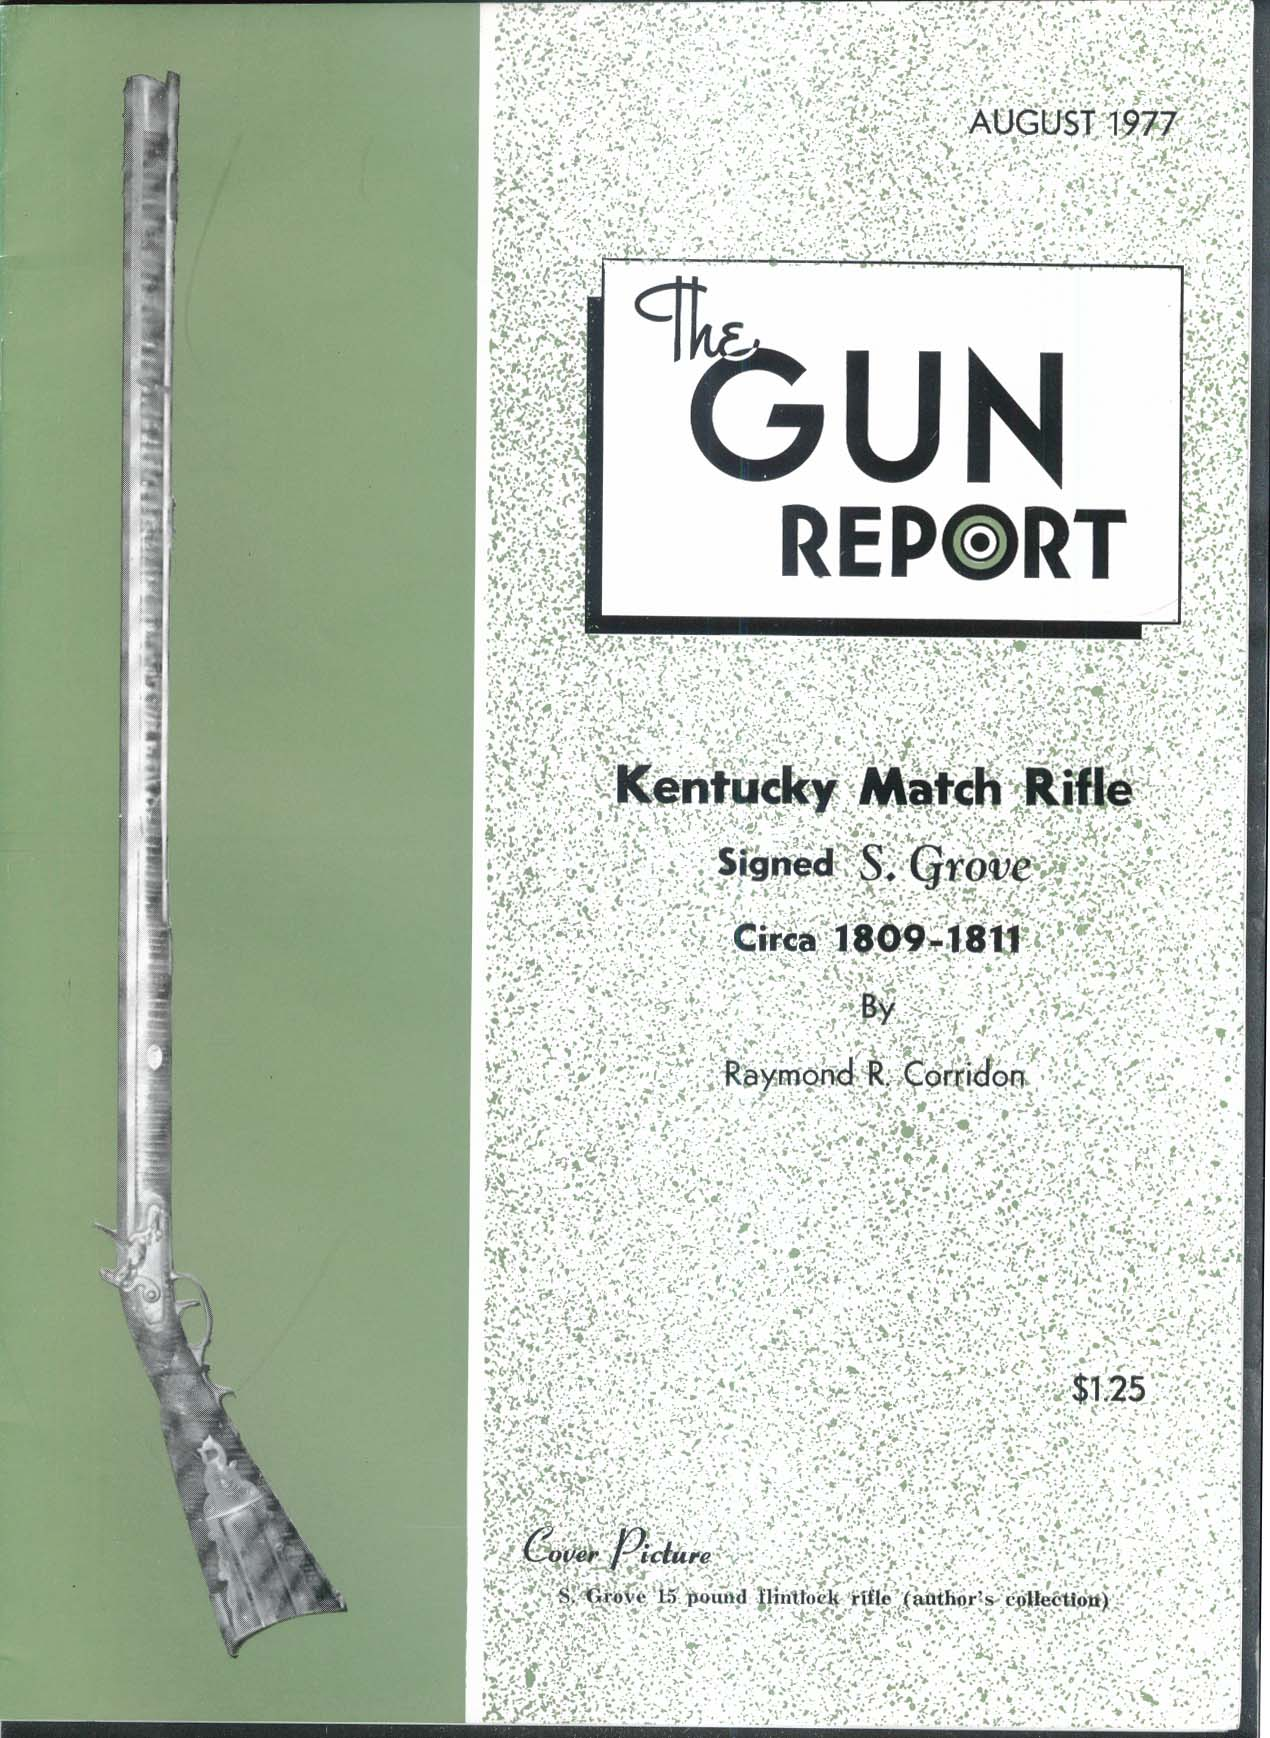 GUN REPORT S Grove Kentucky Match Rifle Shotgun Shell Loading Blocks 8 1977